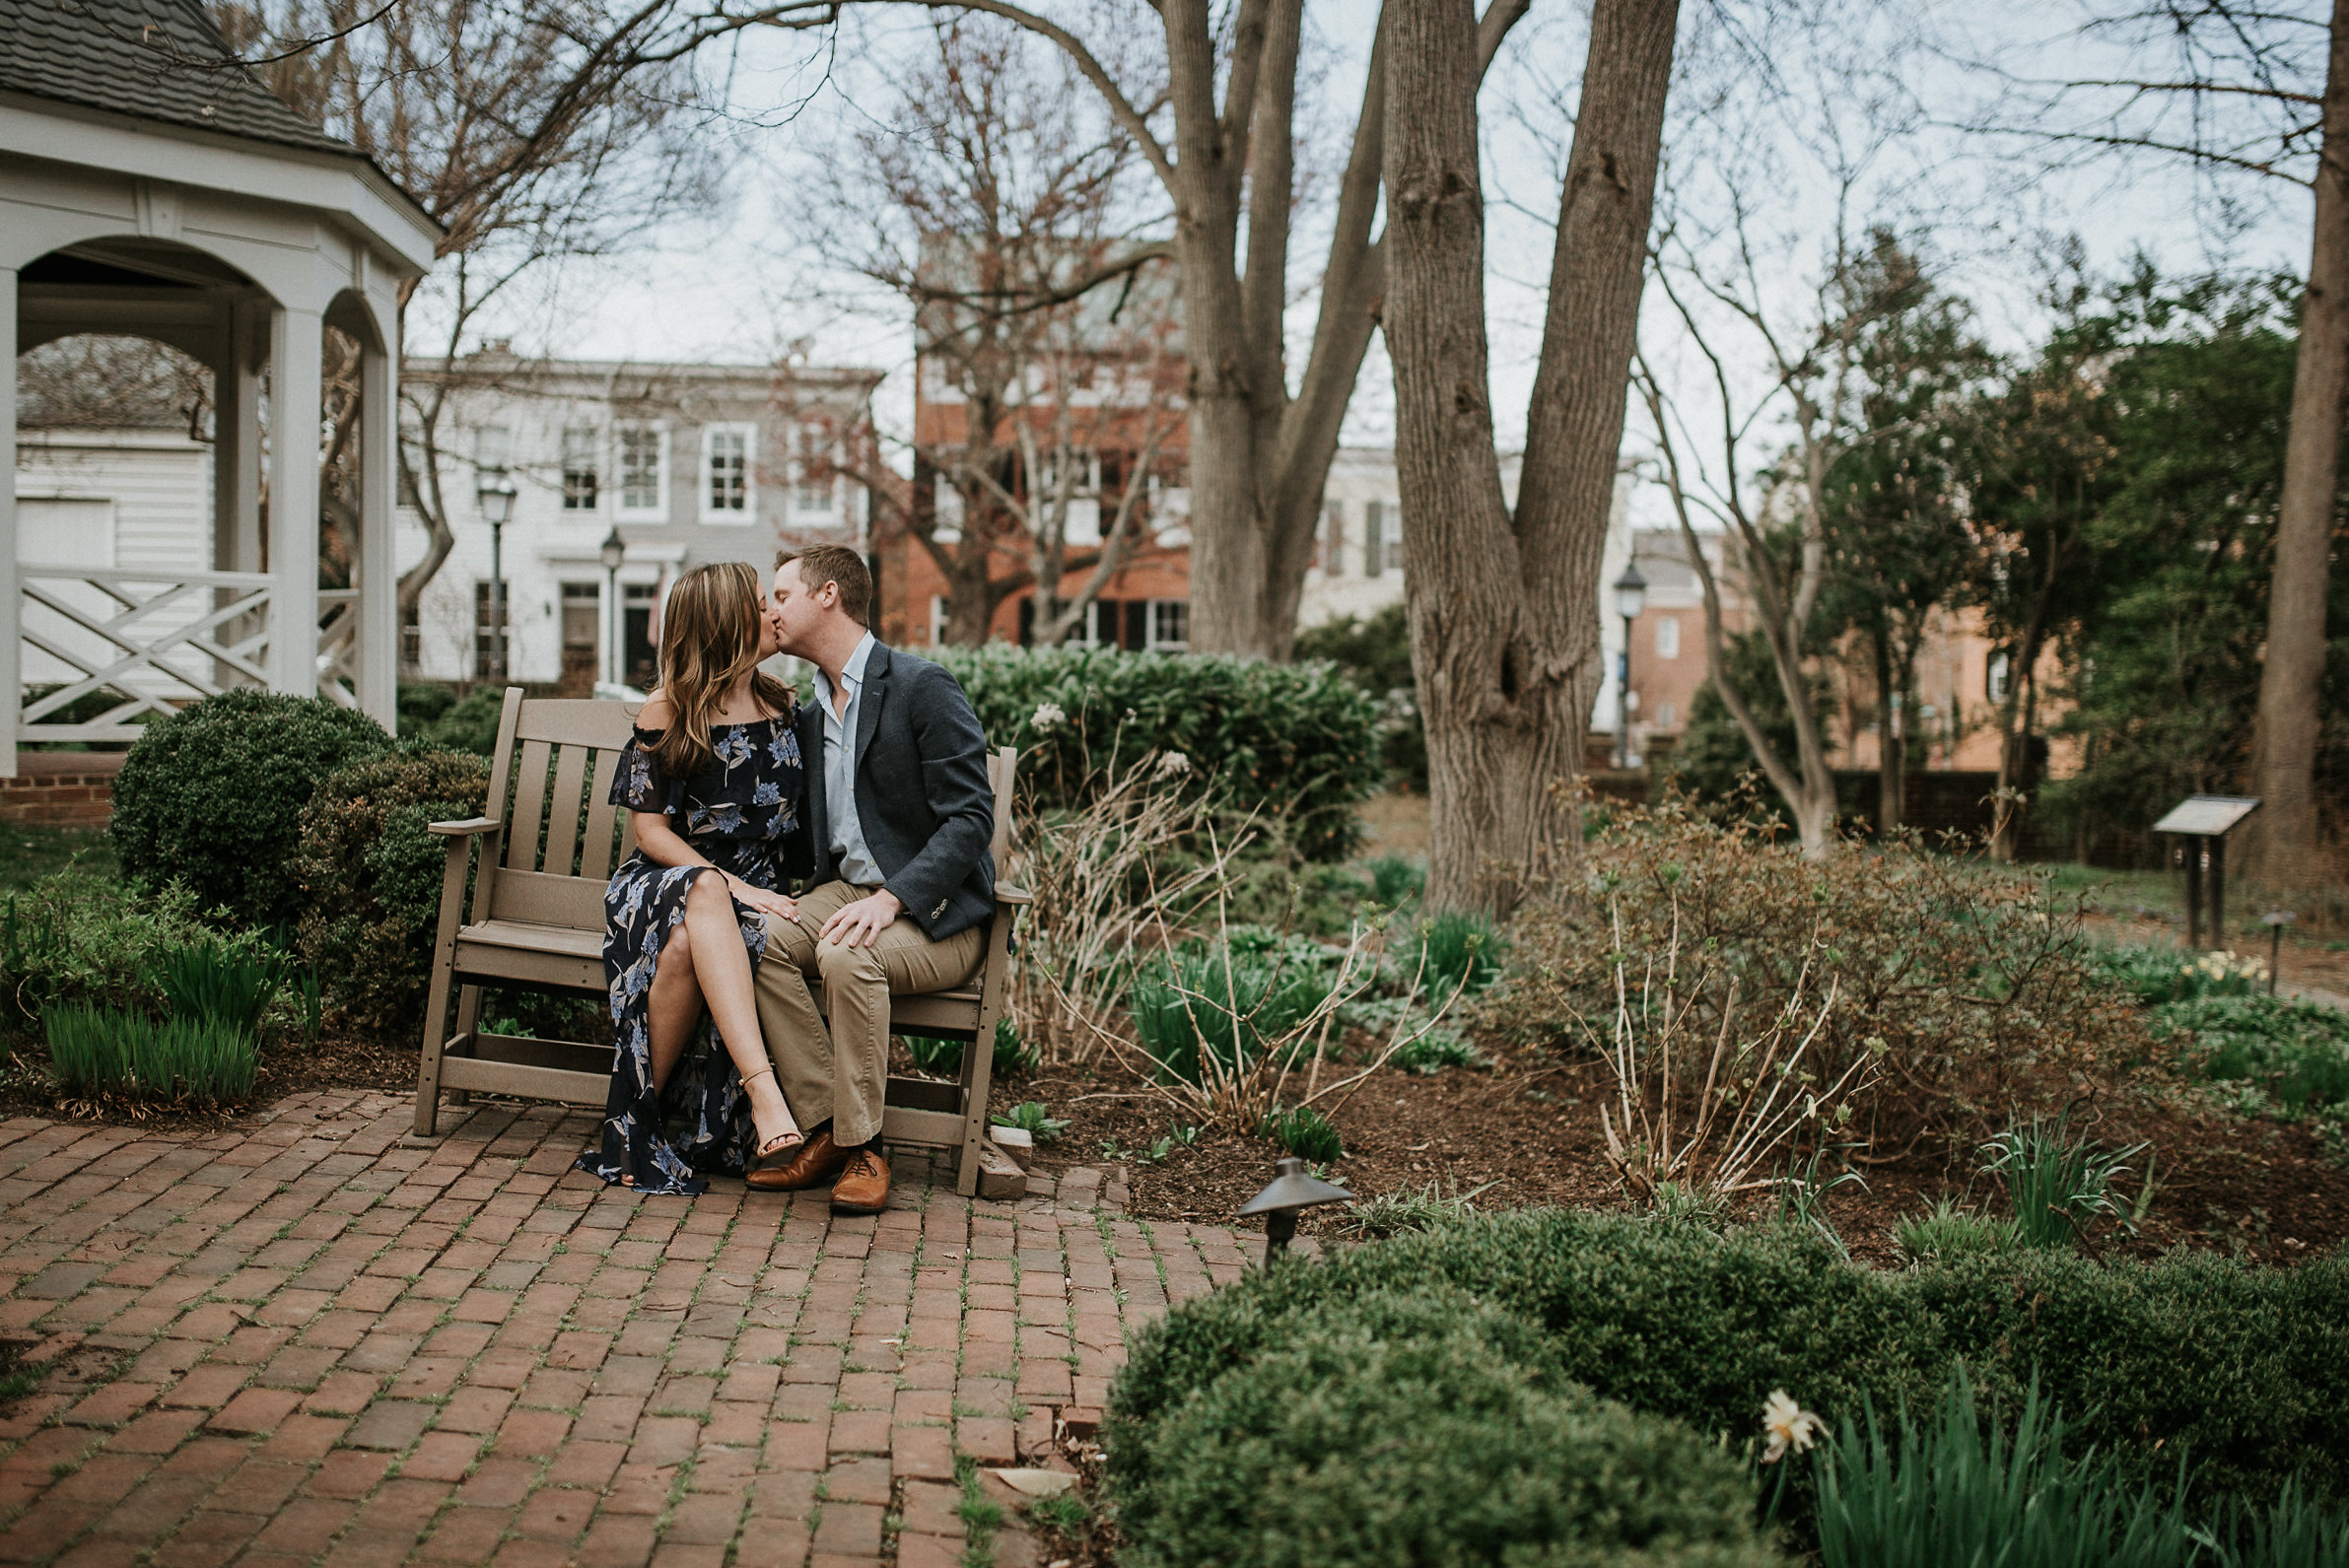 Couple sitting on bench at a slant